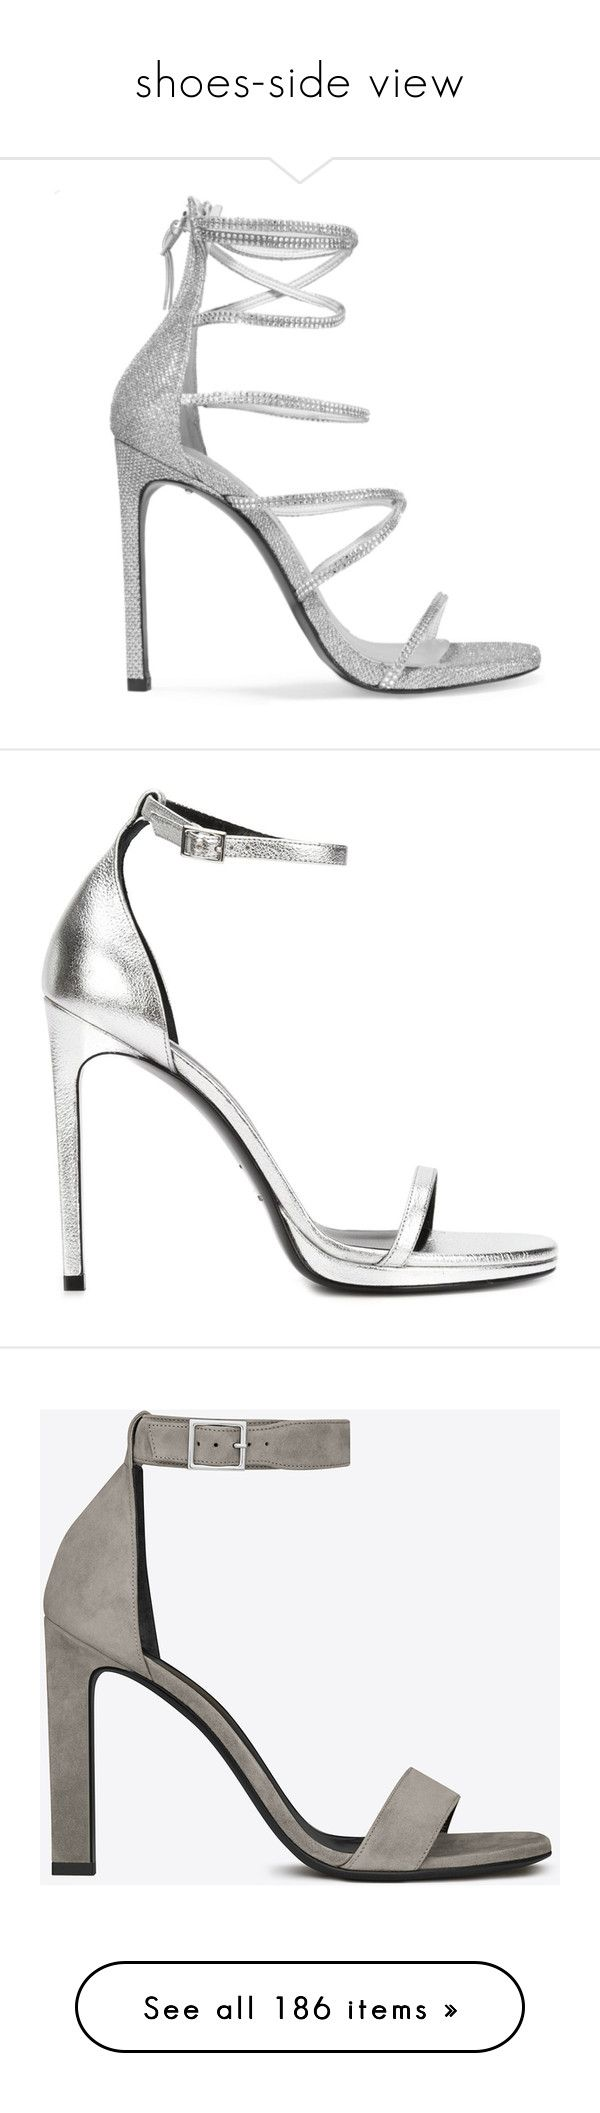 """""""shoes-side view"""" by eva-jez ❤ liked on Polyvore featuring shoes, sandals, heels, galaxy shoes, elastic sandals, mesh sandals, strappy high heel sandals, stuart weitzman shoes, grey and open toe sandals"""